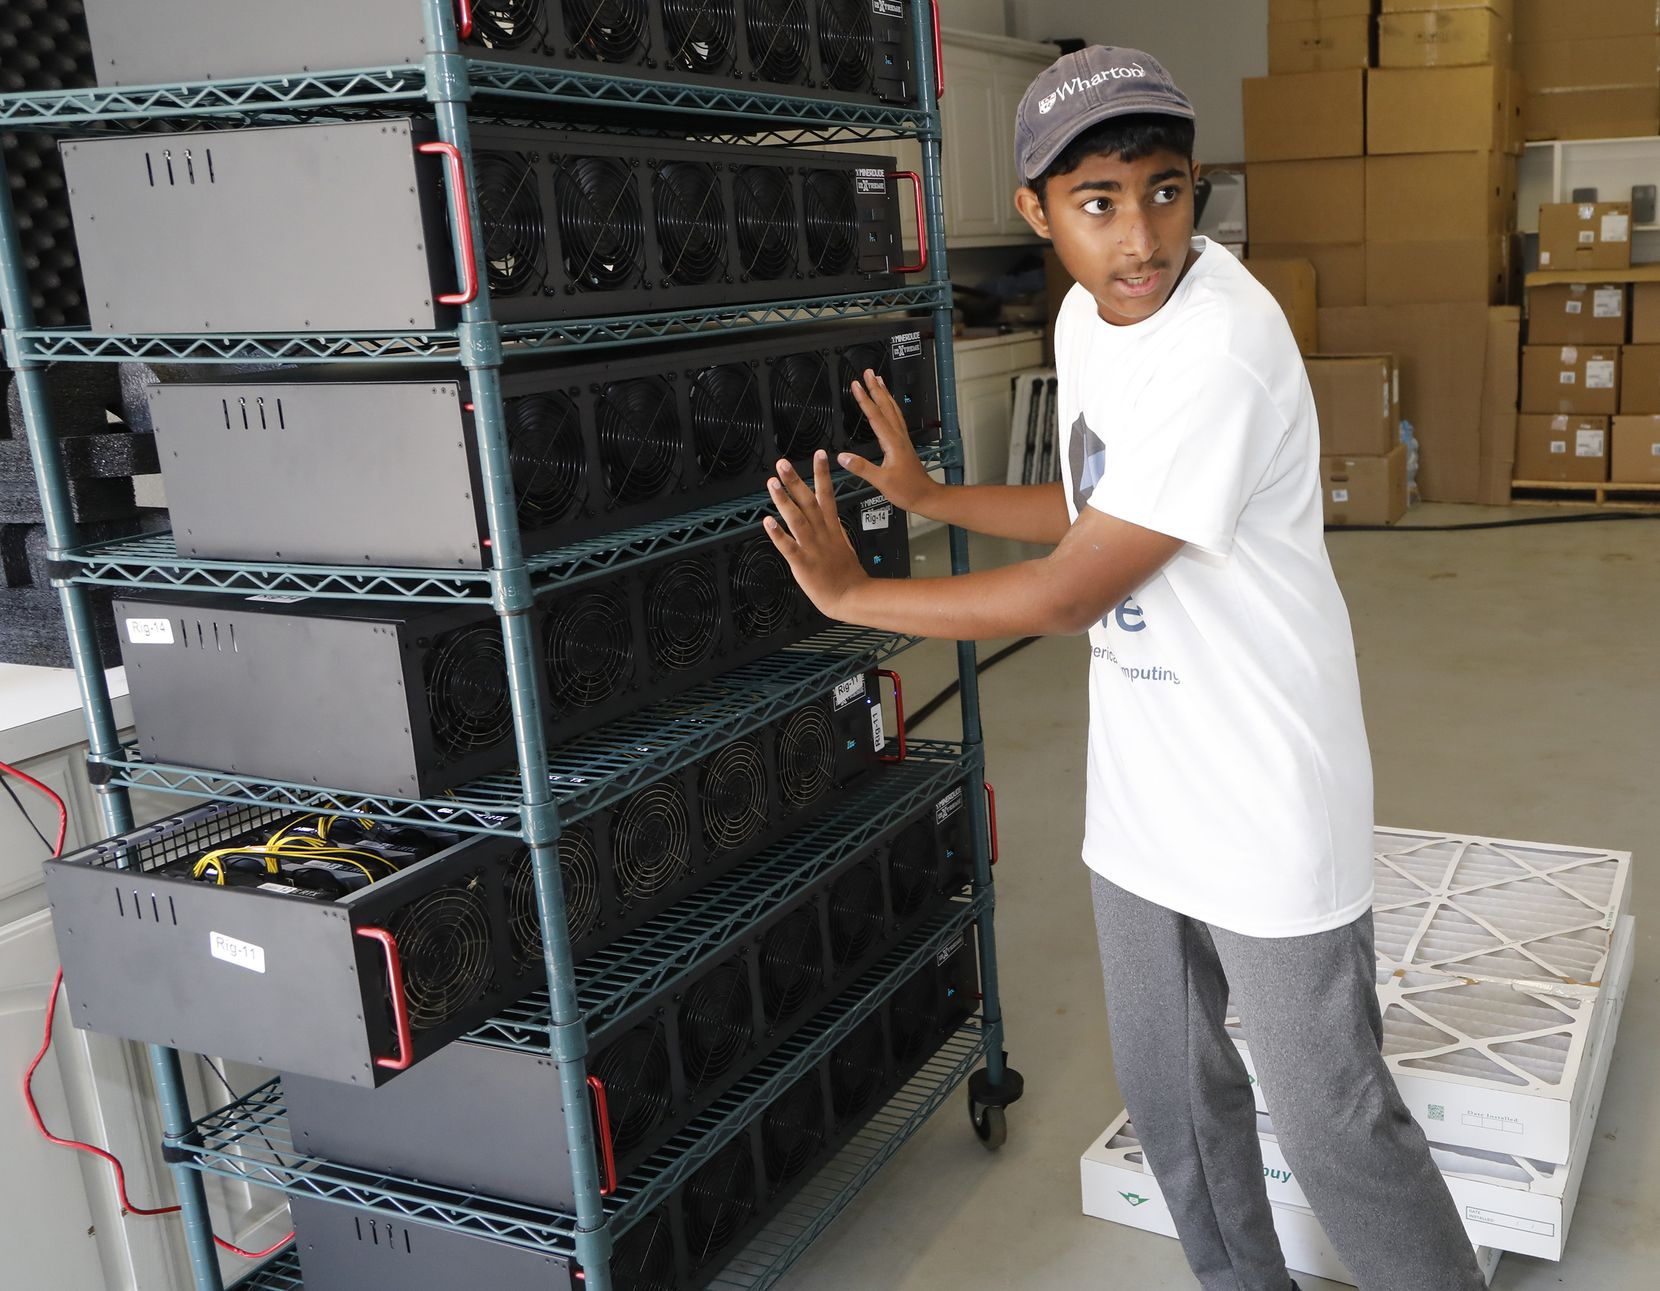 Frisco resident Ishaan Thakur, 14, expains how he is mining cryptocurrency with computers in his garage to make money for college.